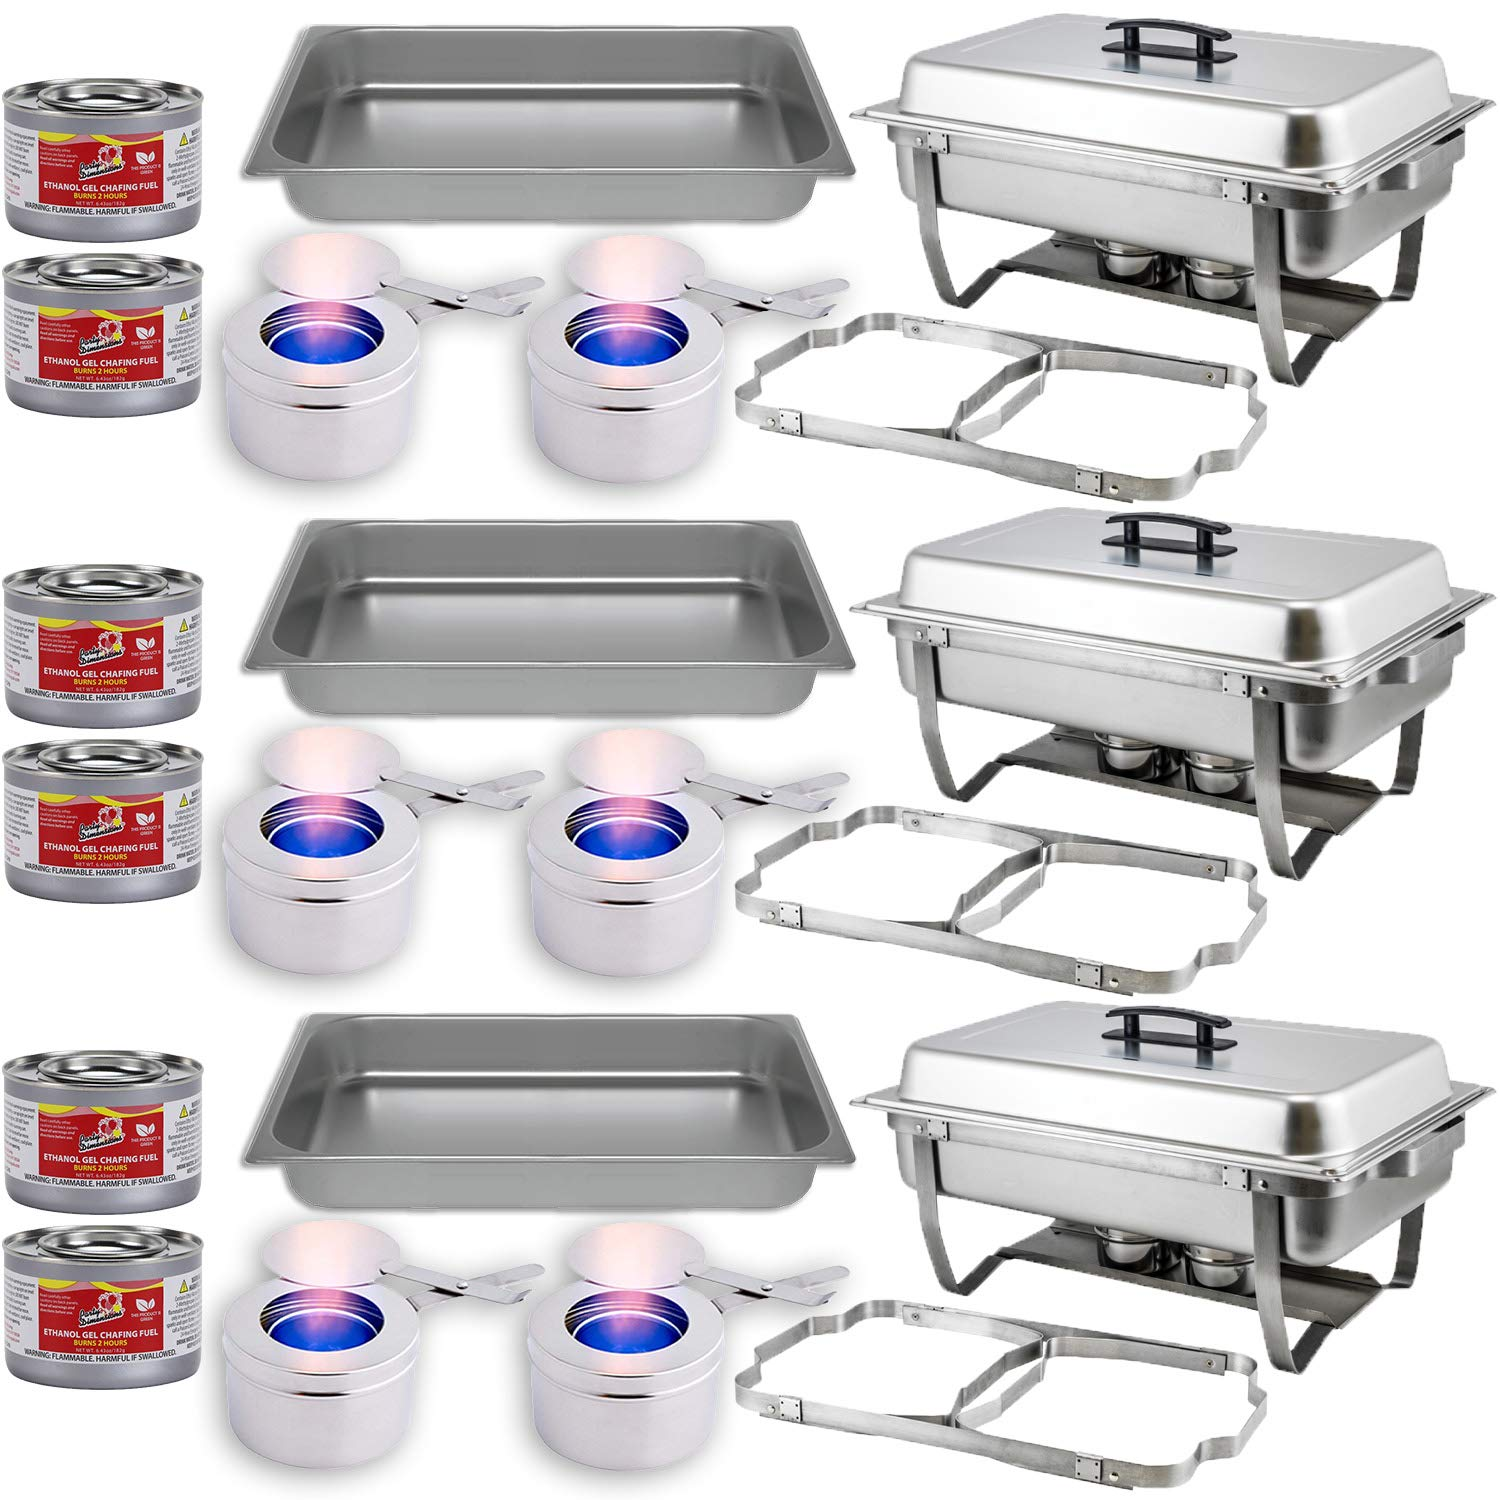 Chafing Dish Buffet Set w/Fuel — Folding Frame + Water Pan + Food Pan (8 qt) + 6 Fuel Holders + 6 Fuel Cans – 3 Full Warmer Kit